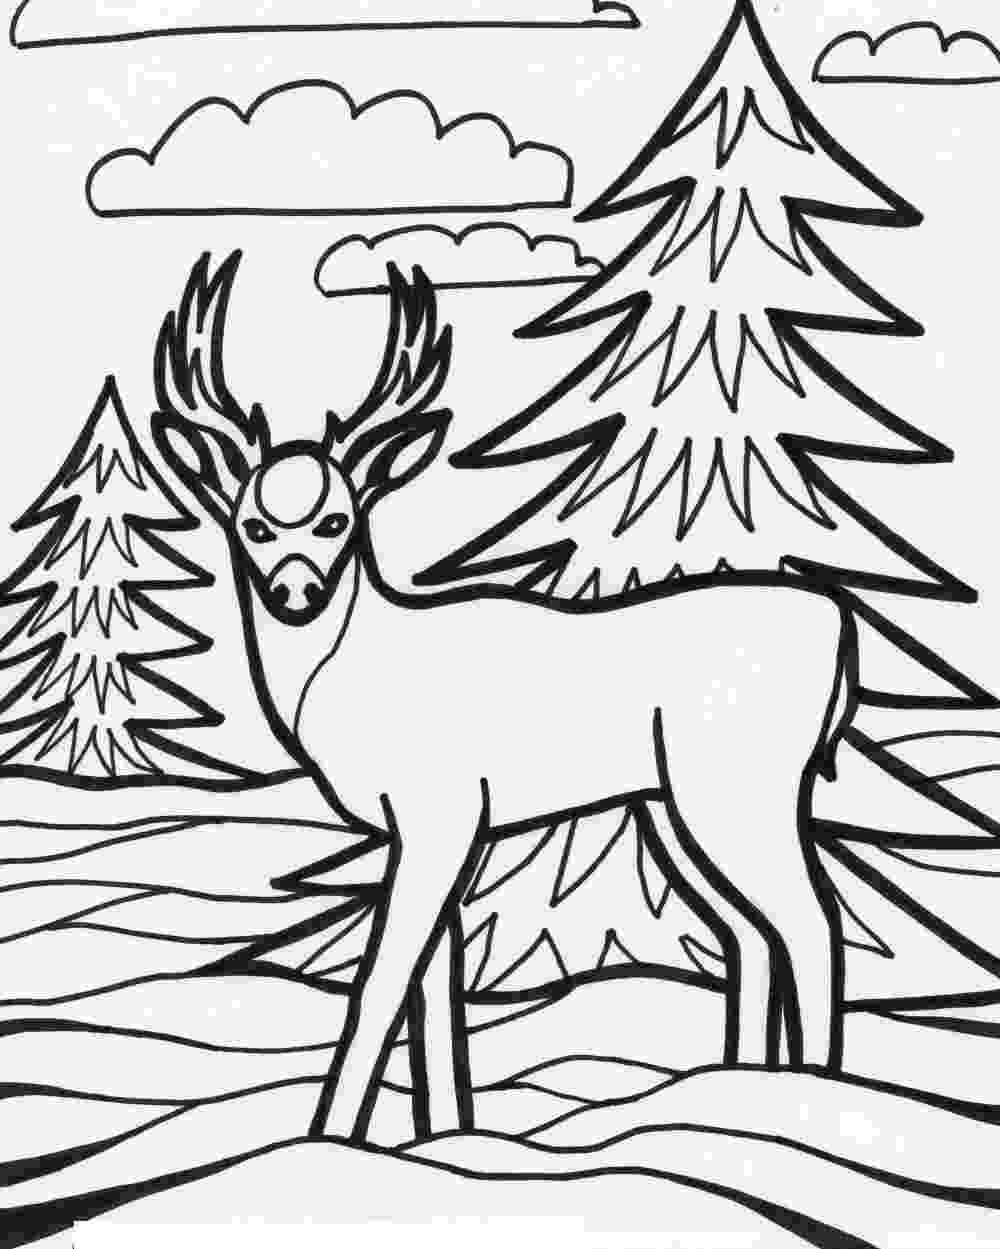 coloring book deer for education new animal deer coloring pages coloring book deer